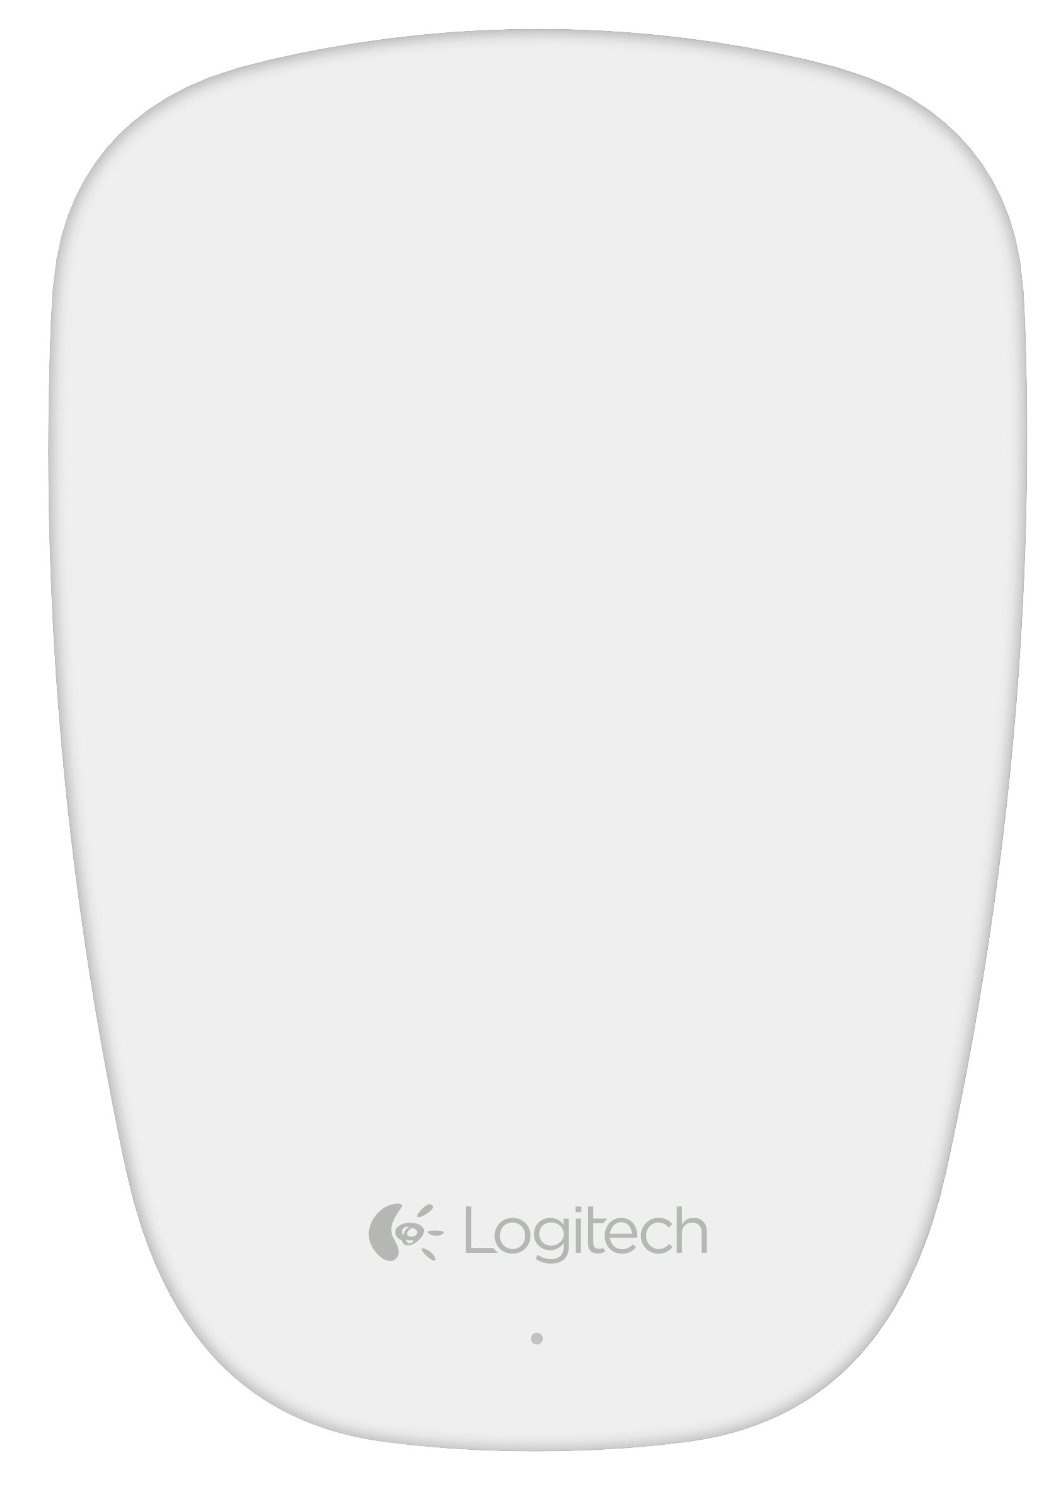 Logitech: White Ultrathin Touch Mouse t631 for Mac